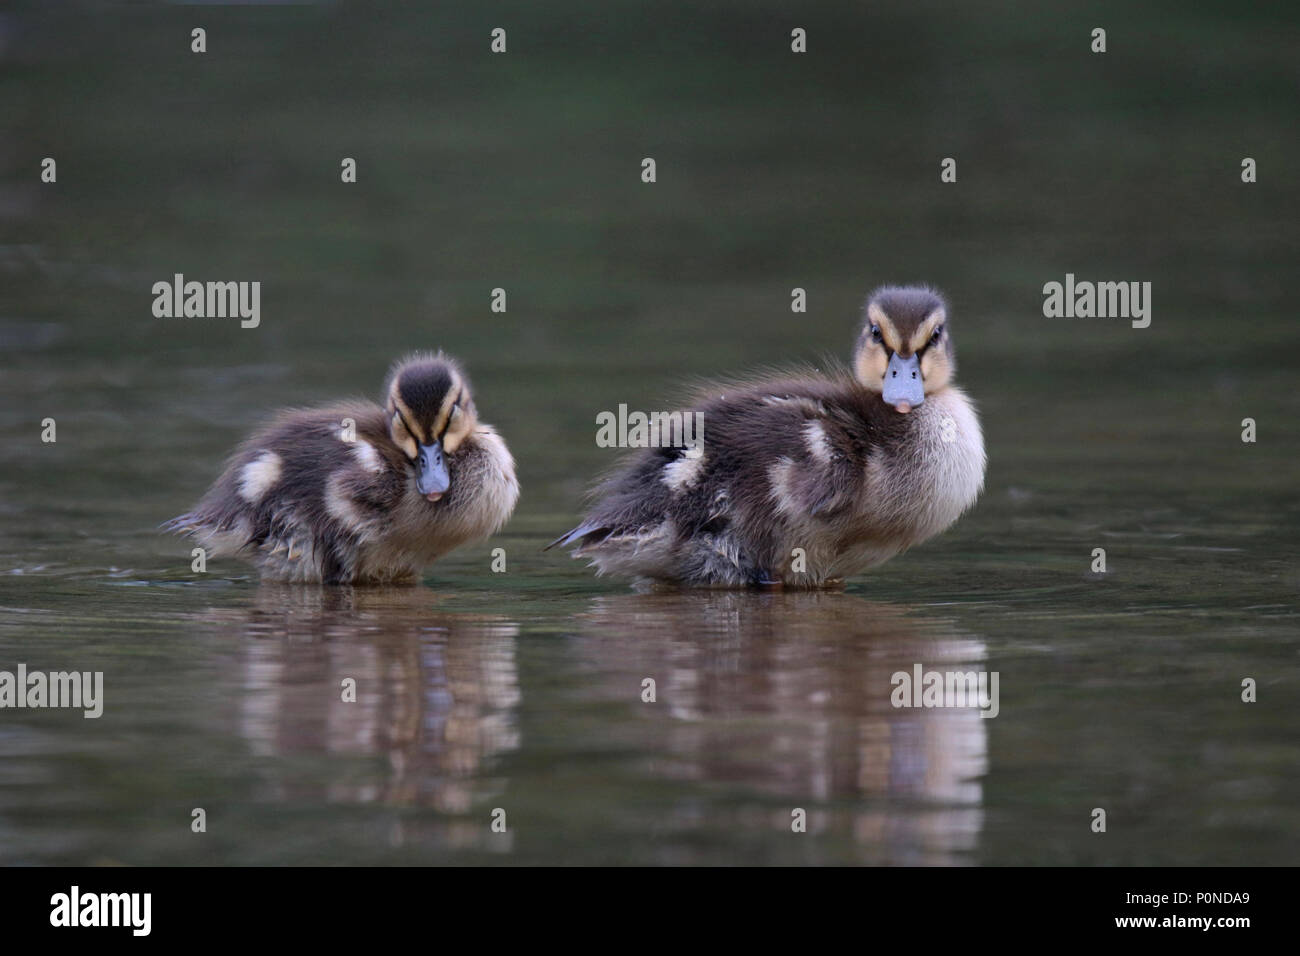 A couple of cute mallard ducklings resting in the shallow water near the edge of a pond. - Stock Image